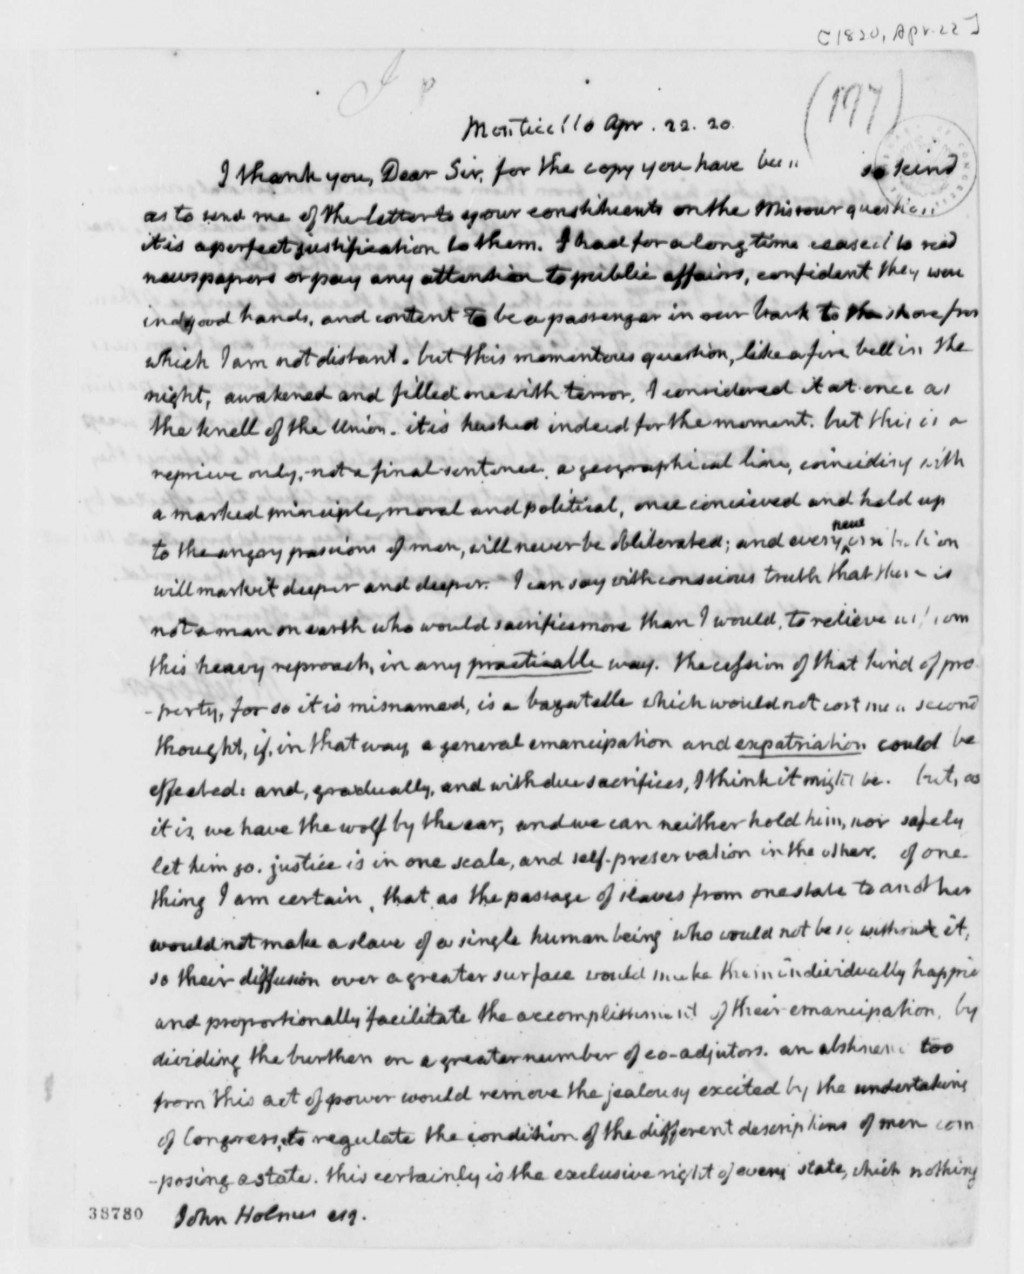 003 Thomas Jefferson Essay Example Magnificent Questions High School Sample Large